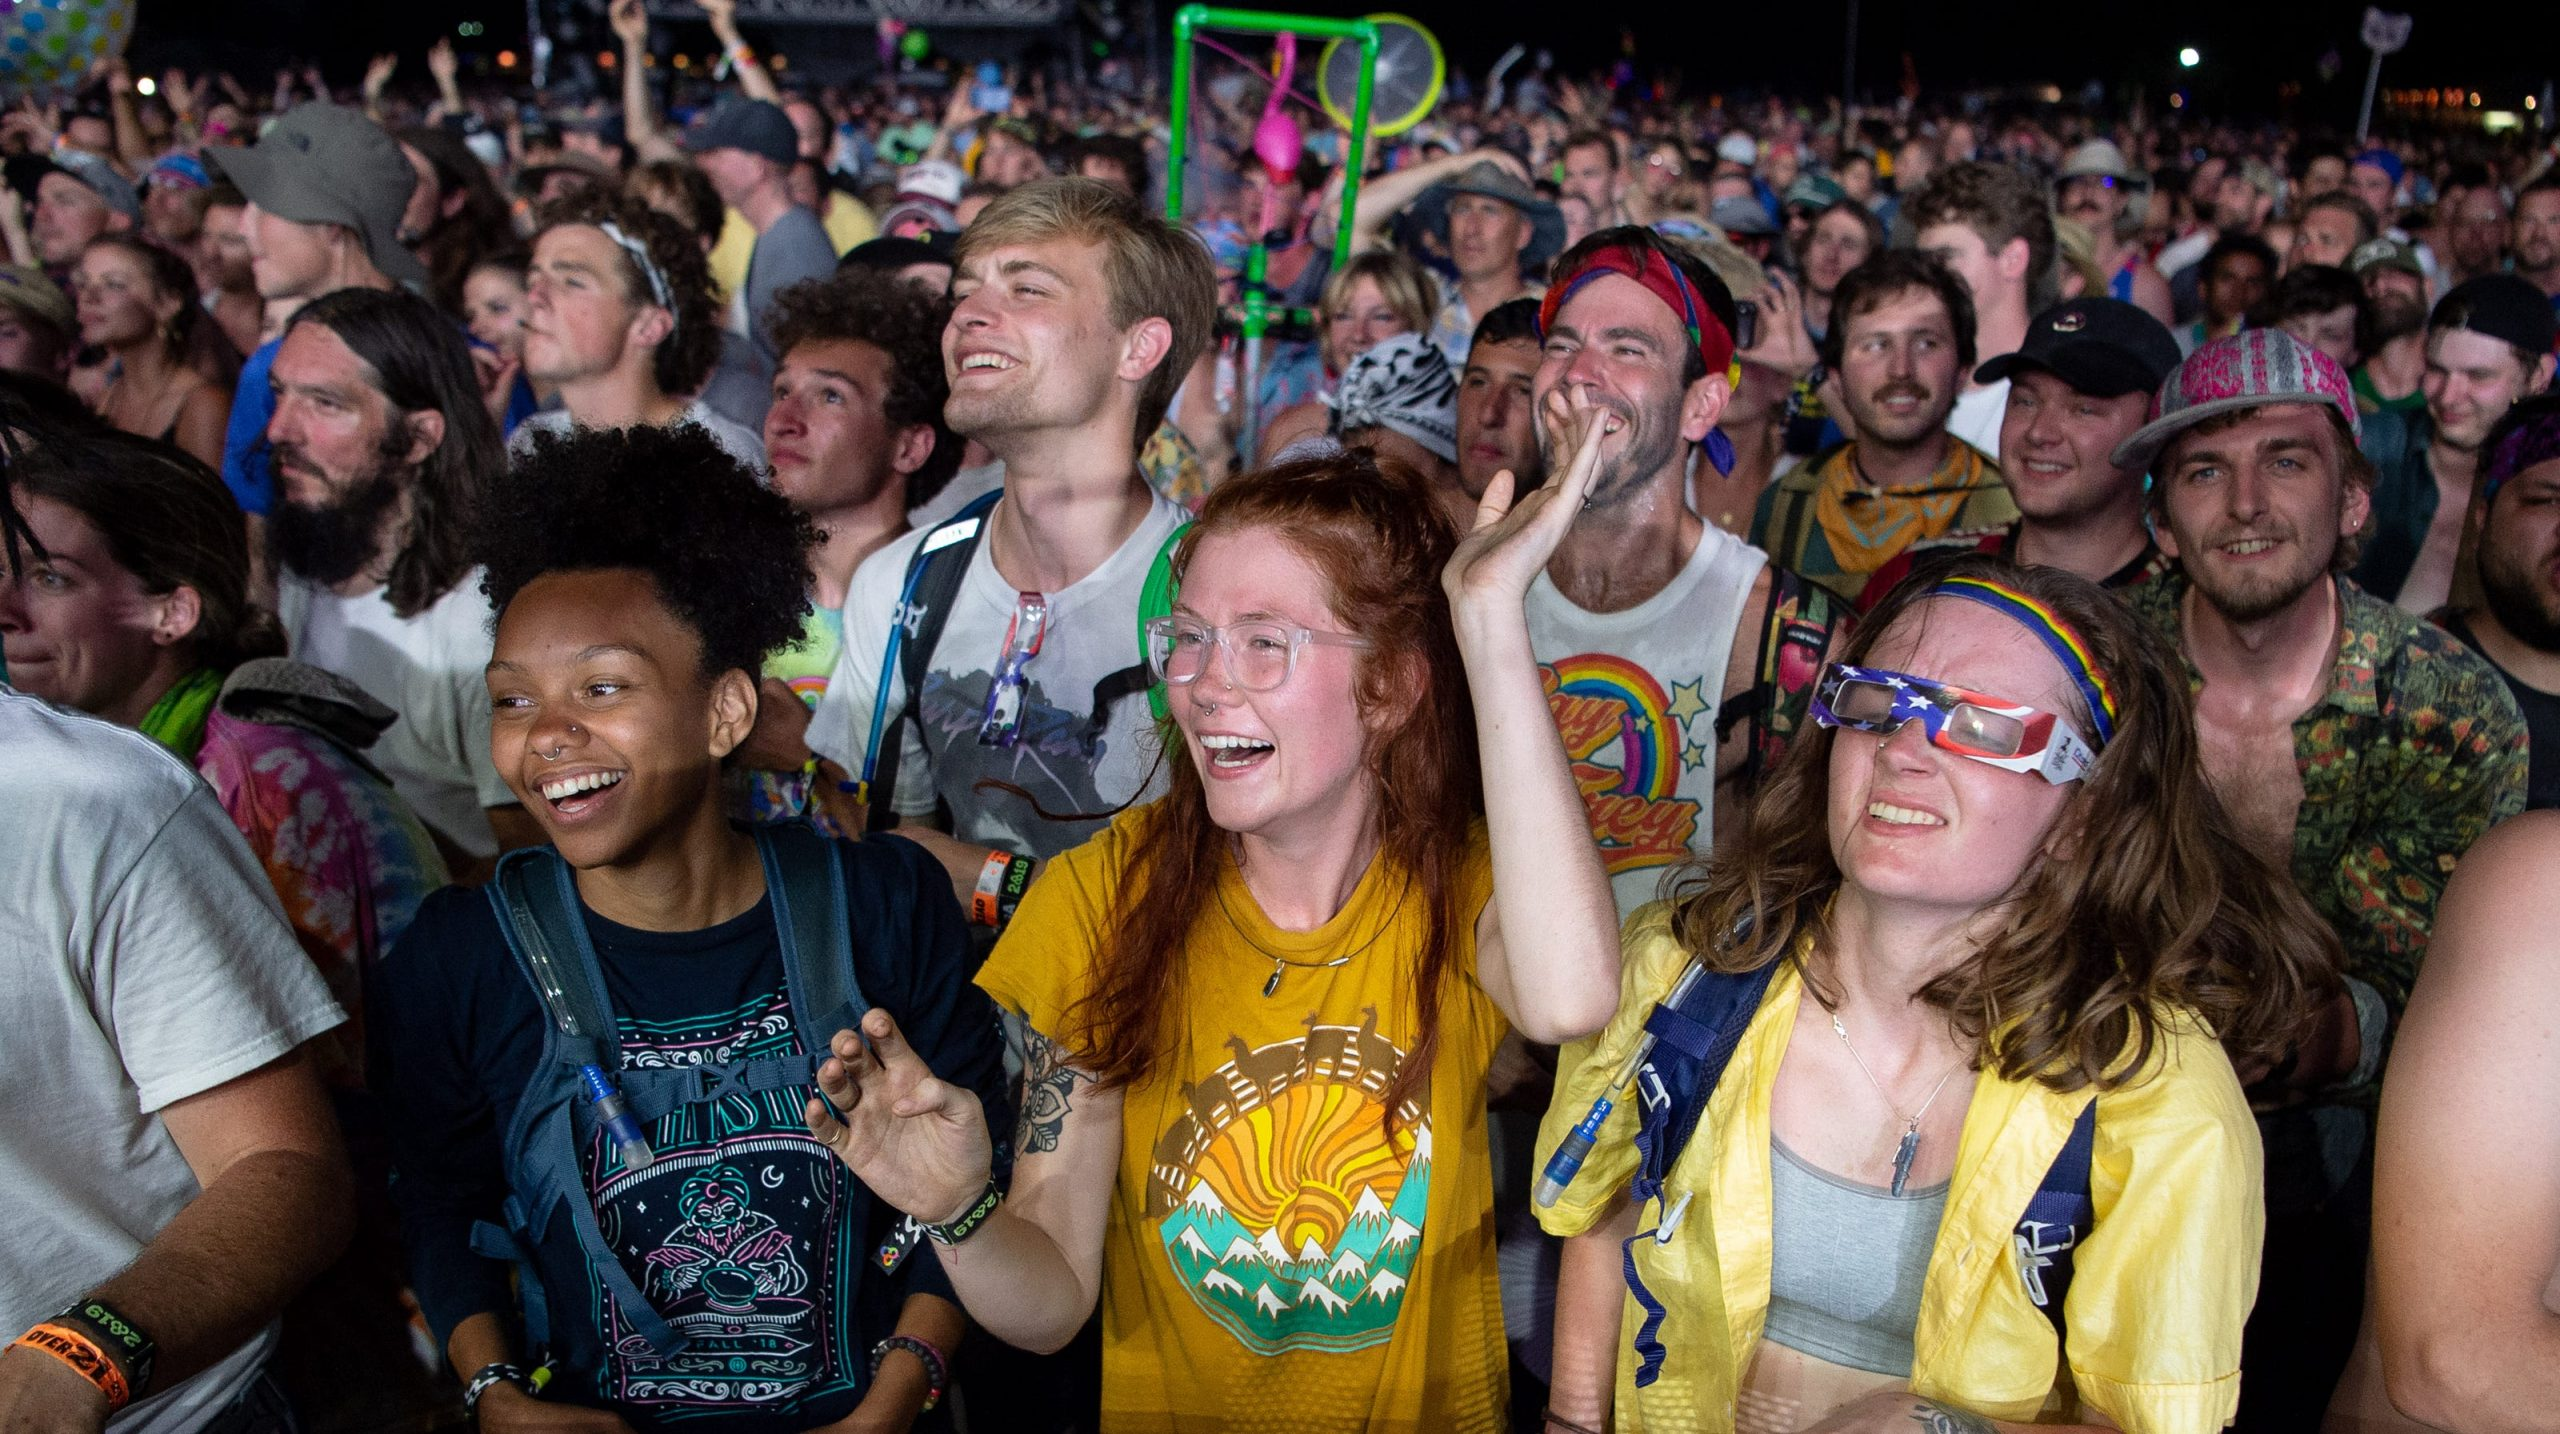 Bonnaroo Music And Arts Festival Is The Most Positive Place On This Planet